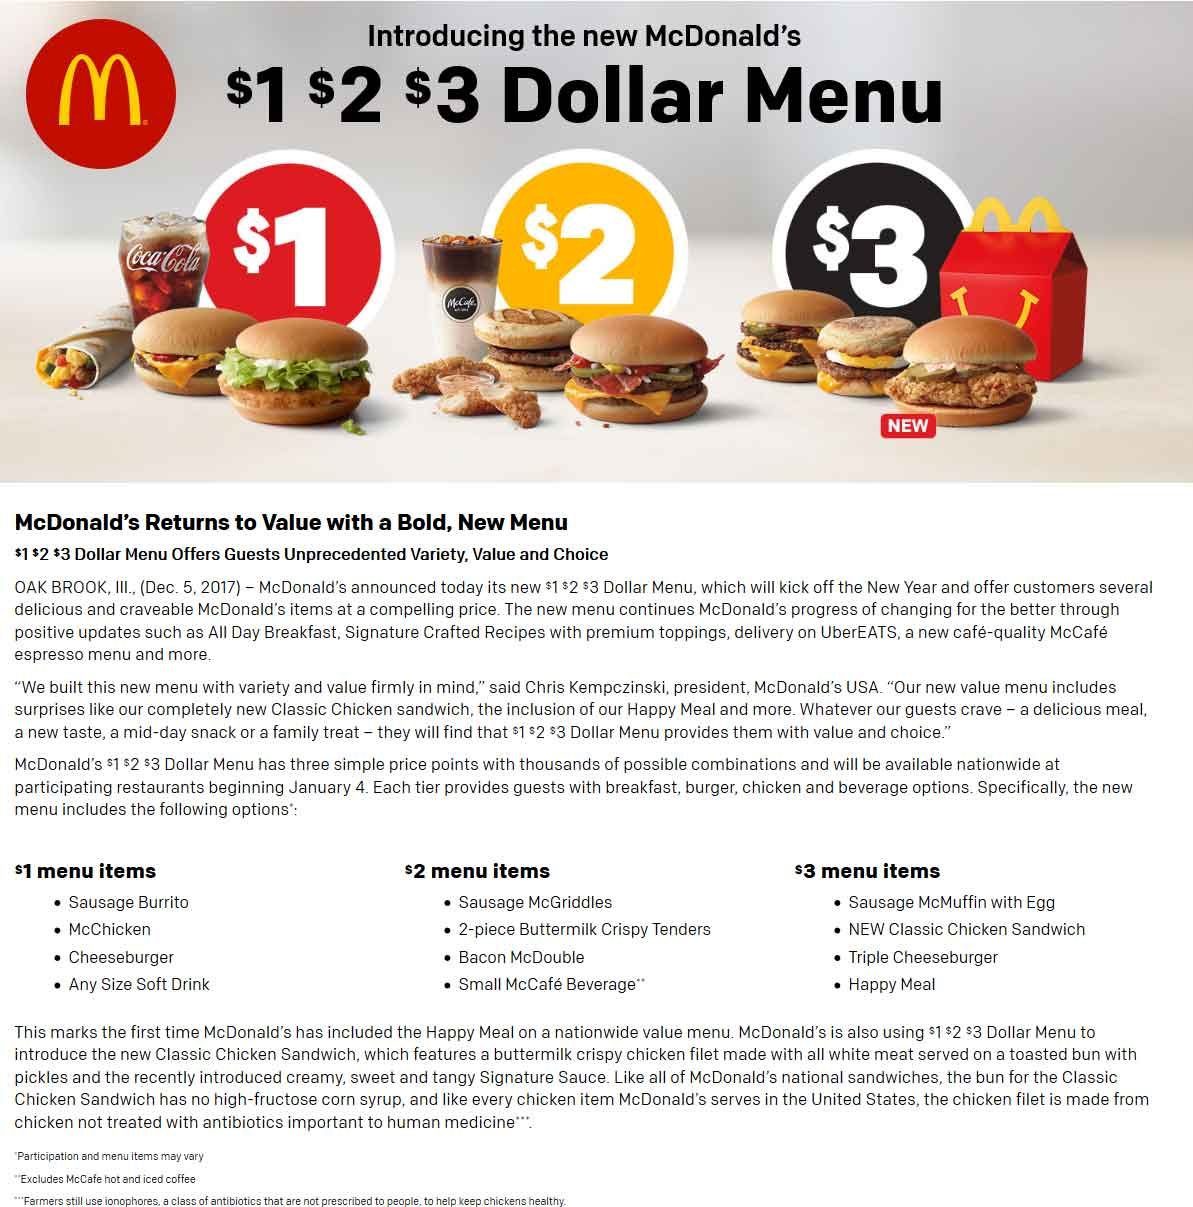 McDonalds Coupon April 2019 Happy meal added to McDonalds updated dollar menu